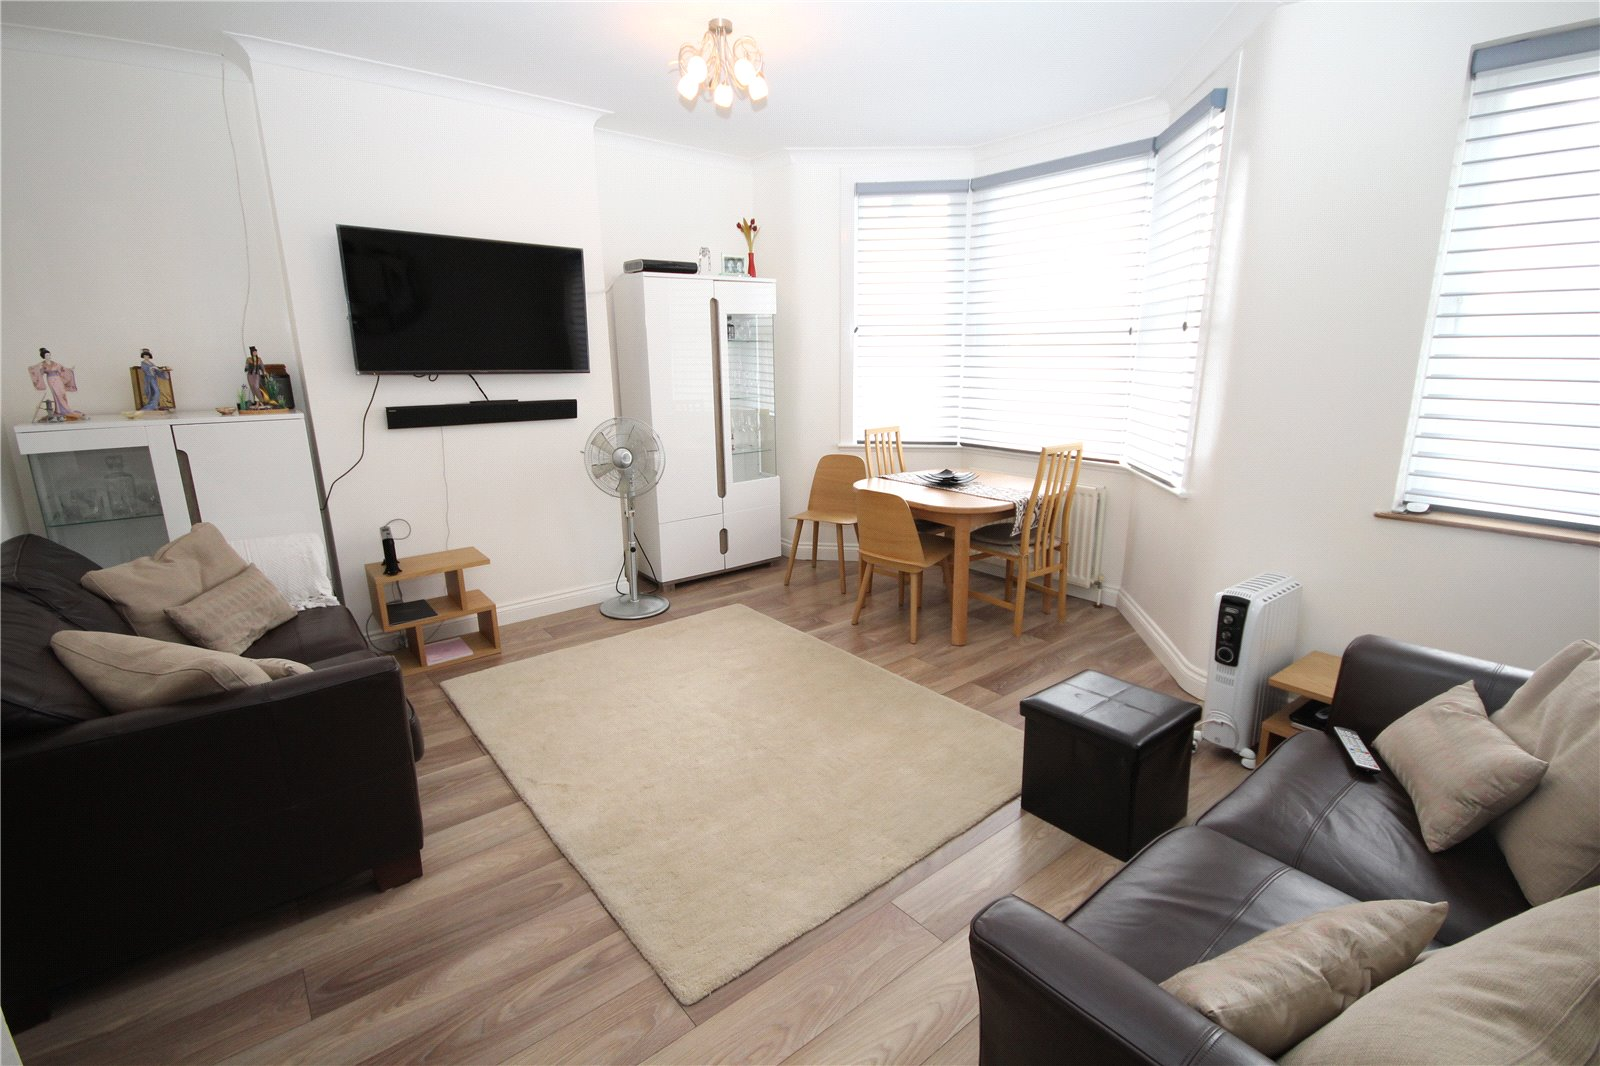 Park View Road, Welling, Kent, DA16